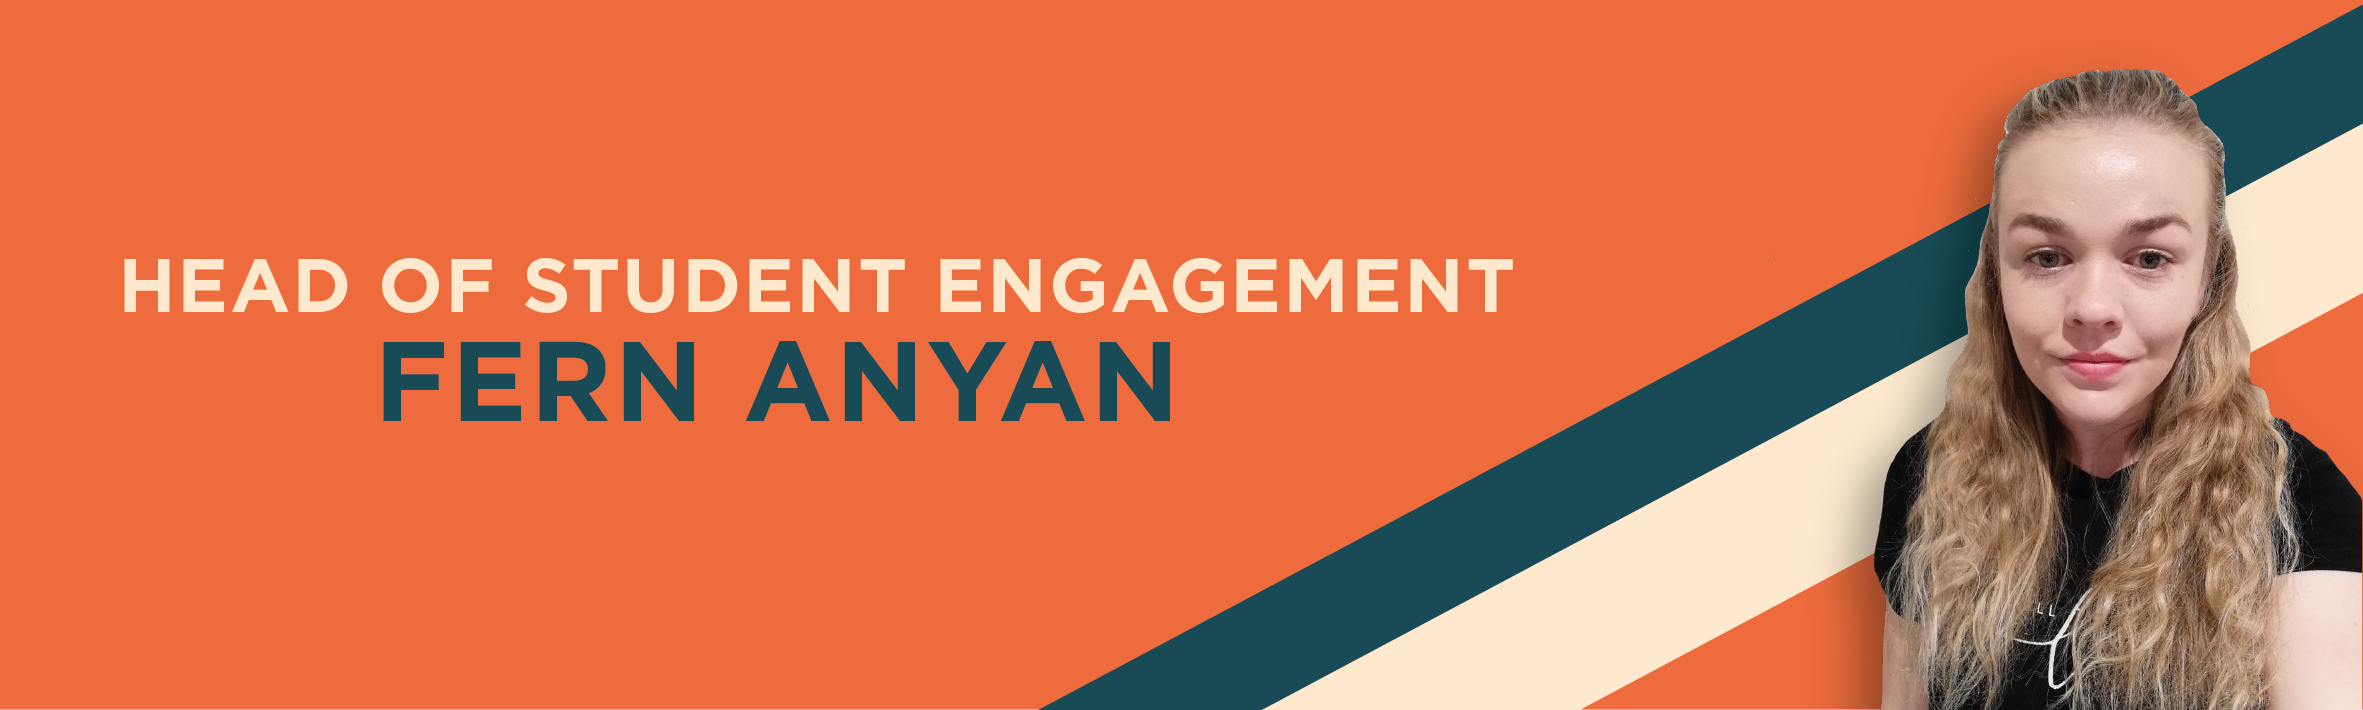 Head of Student Engagement - Fern Anyan